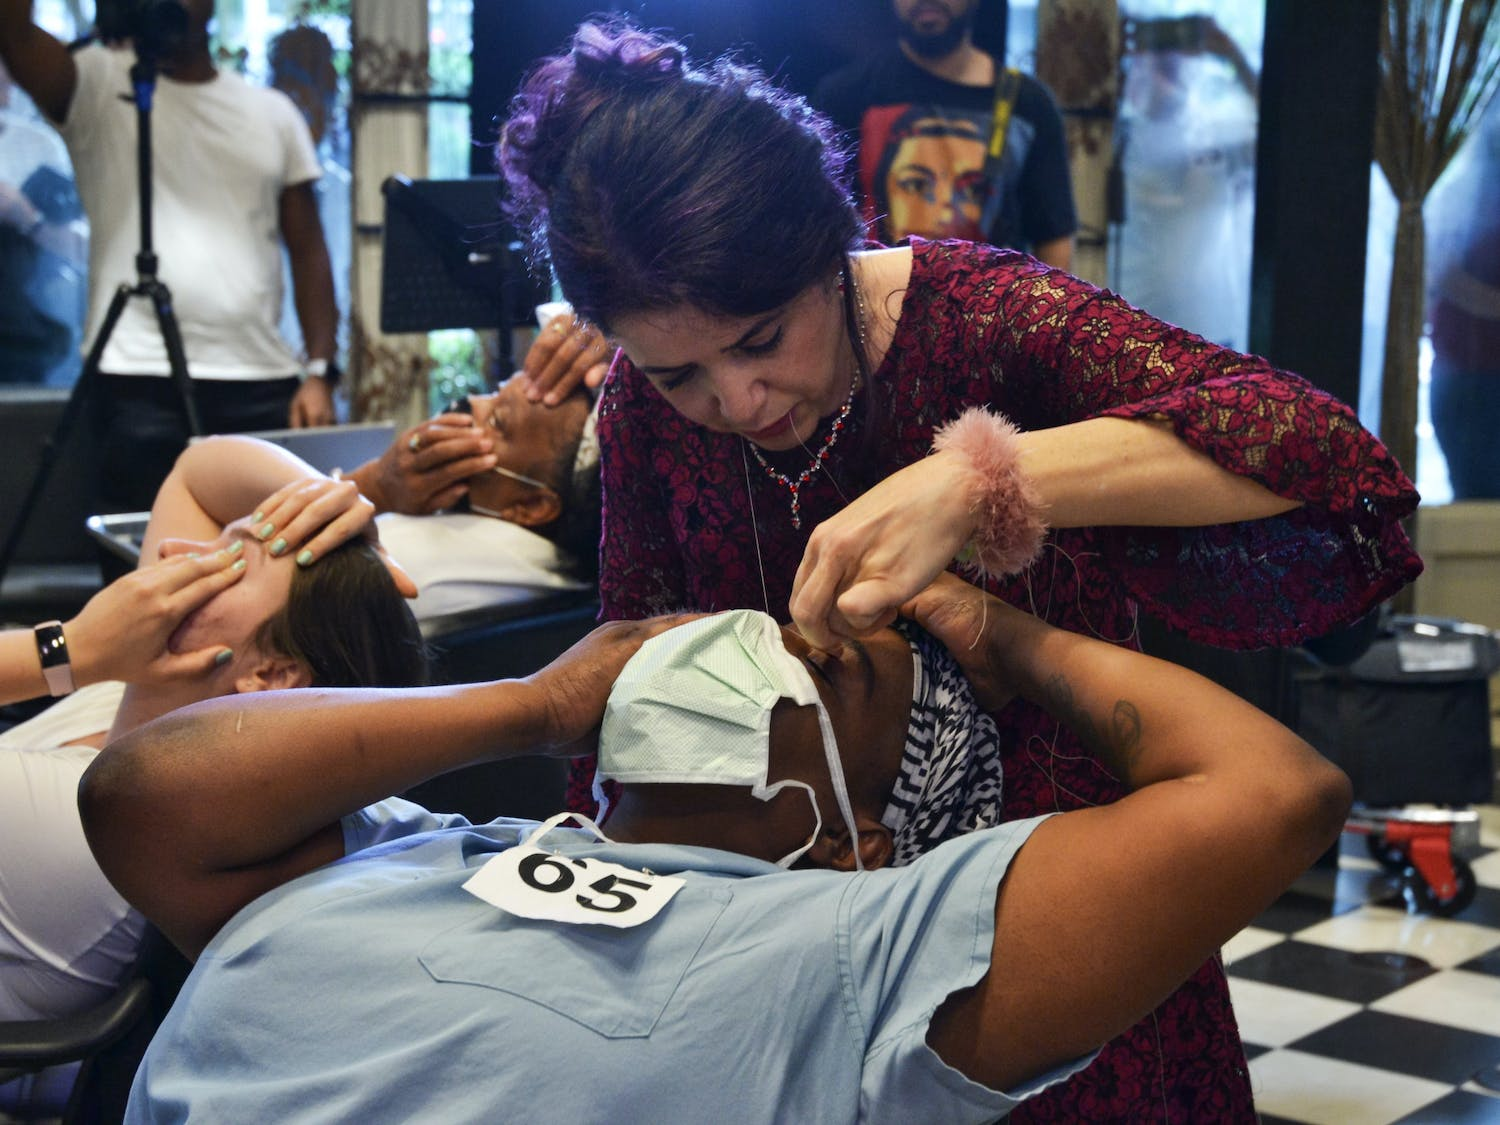 Ziba Ahmadi, owner of Salon Ziba in Gainesville, threads Shavonne Carter's eyebrows, and breaks the previous record for most eyebrows threaded by one person in one hour on Wednesday, June 16, 2021.